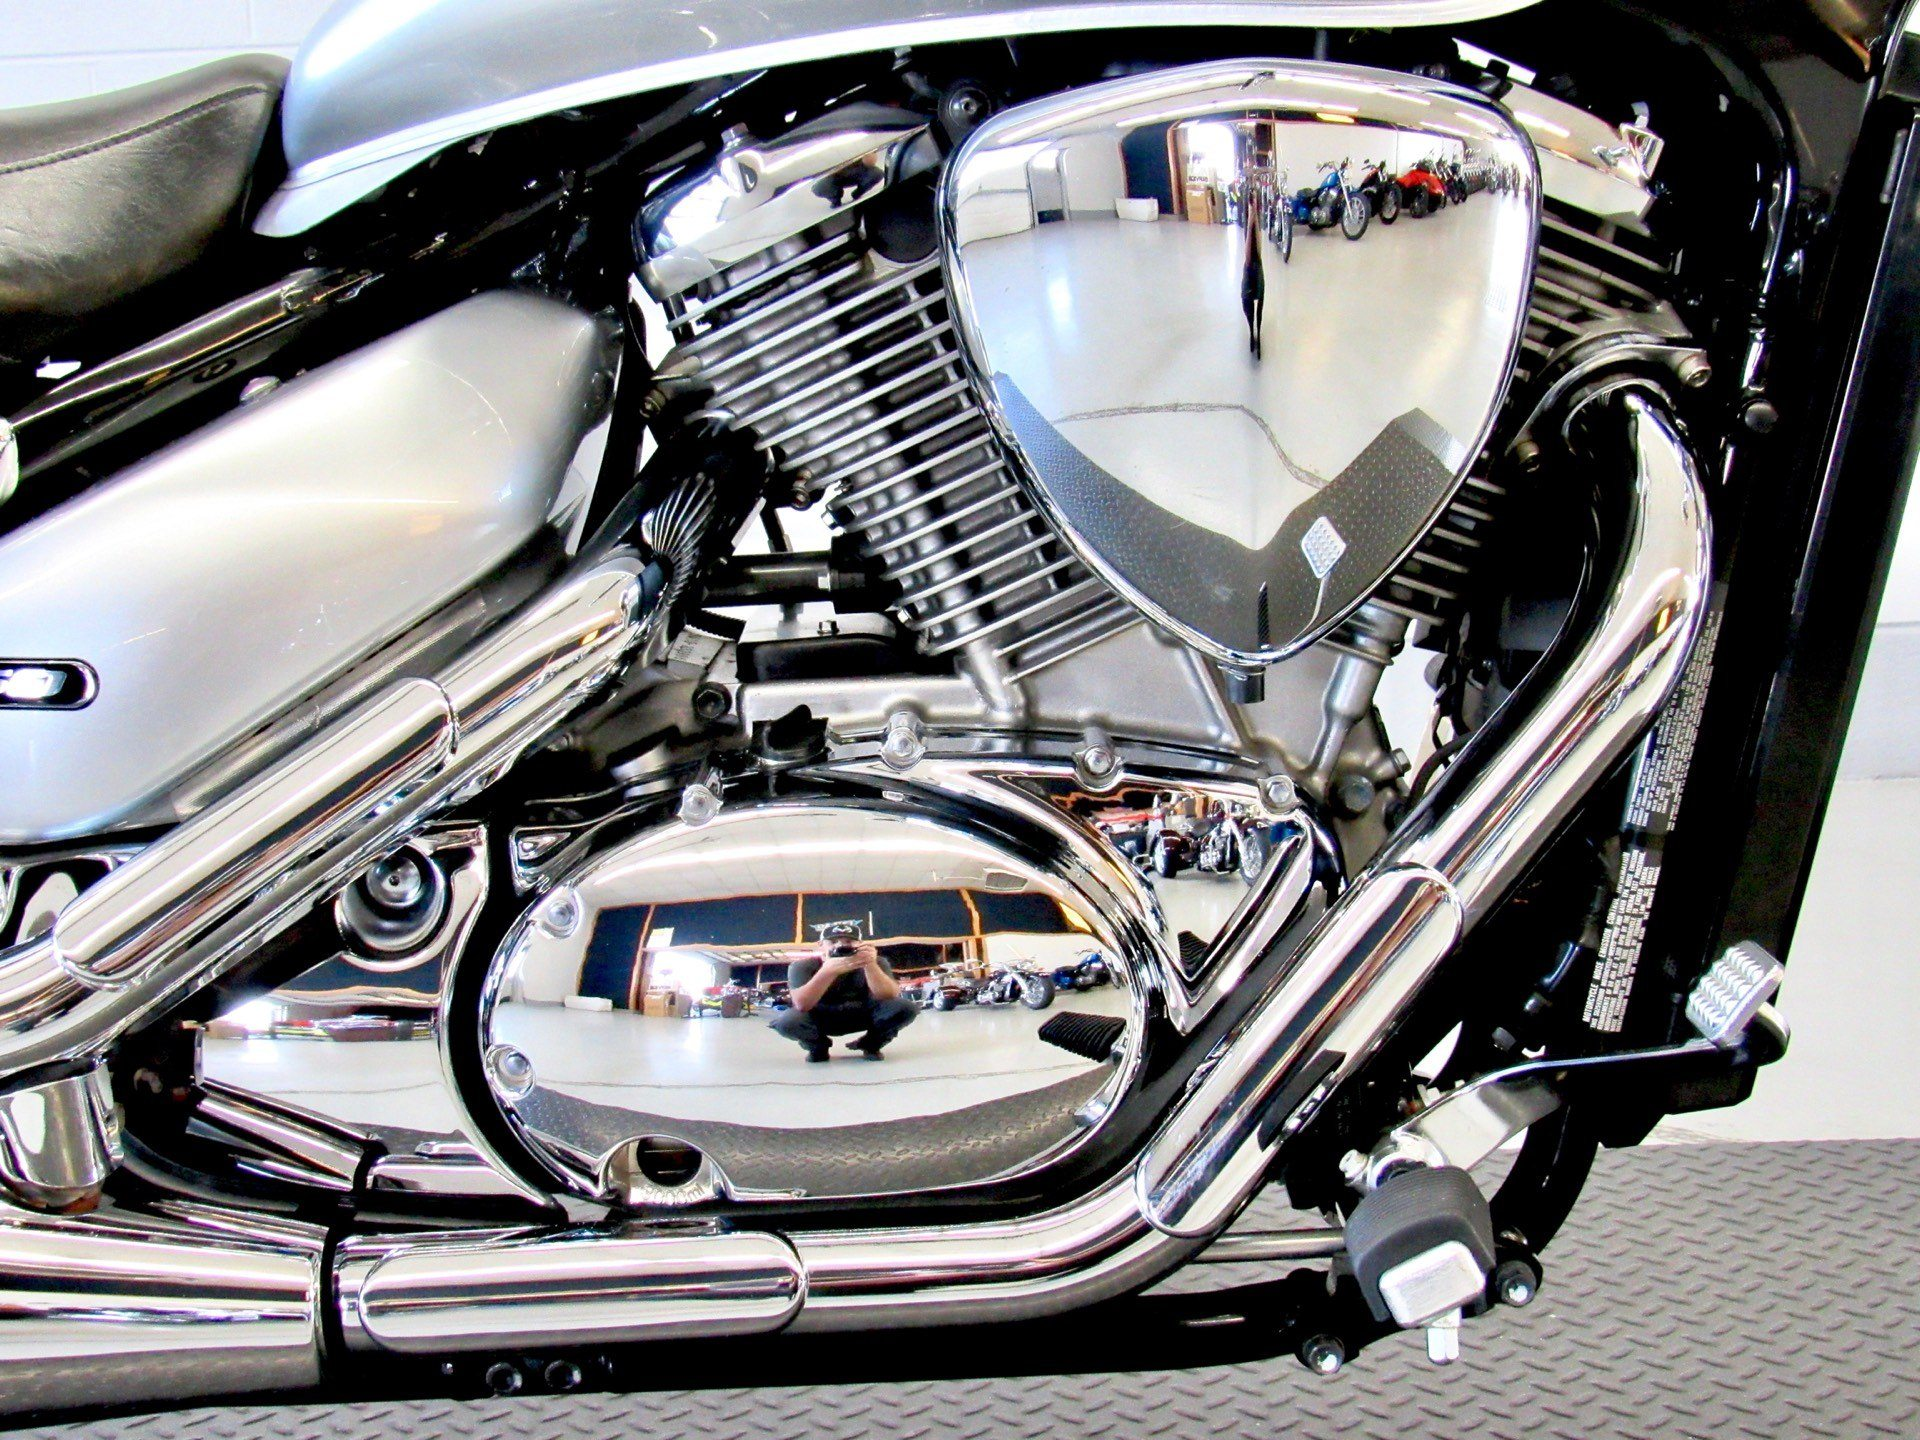 2013 Suzuki Boulevard M50 in Fredericksburg, Virginia - Photo 14